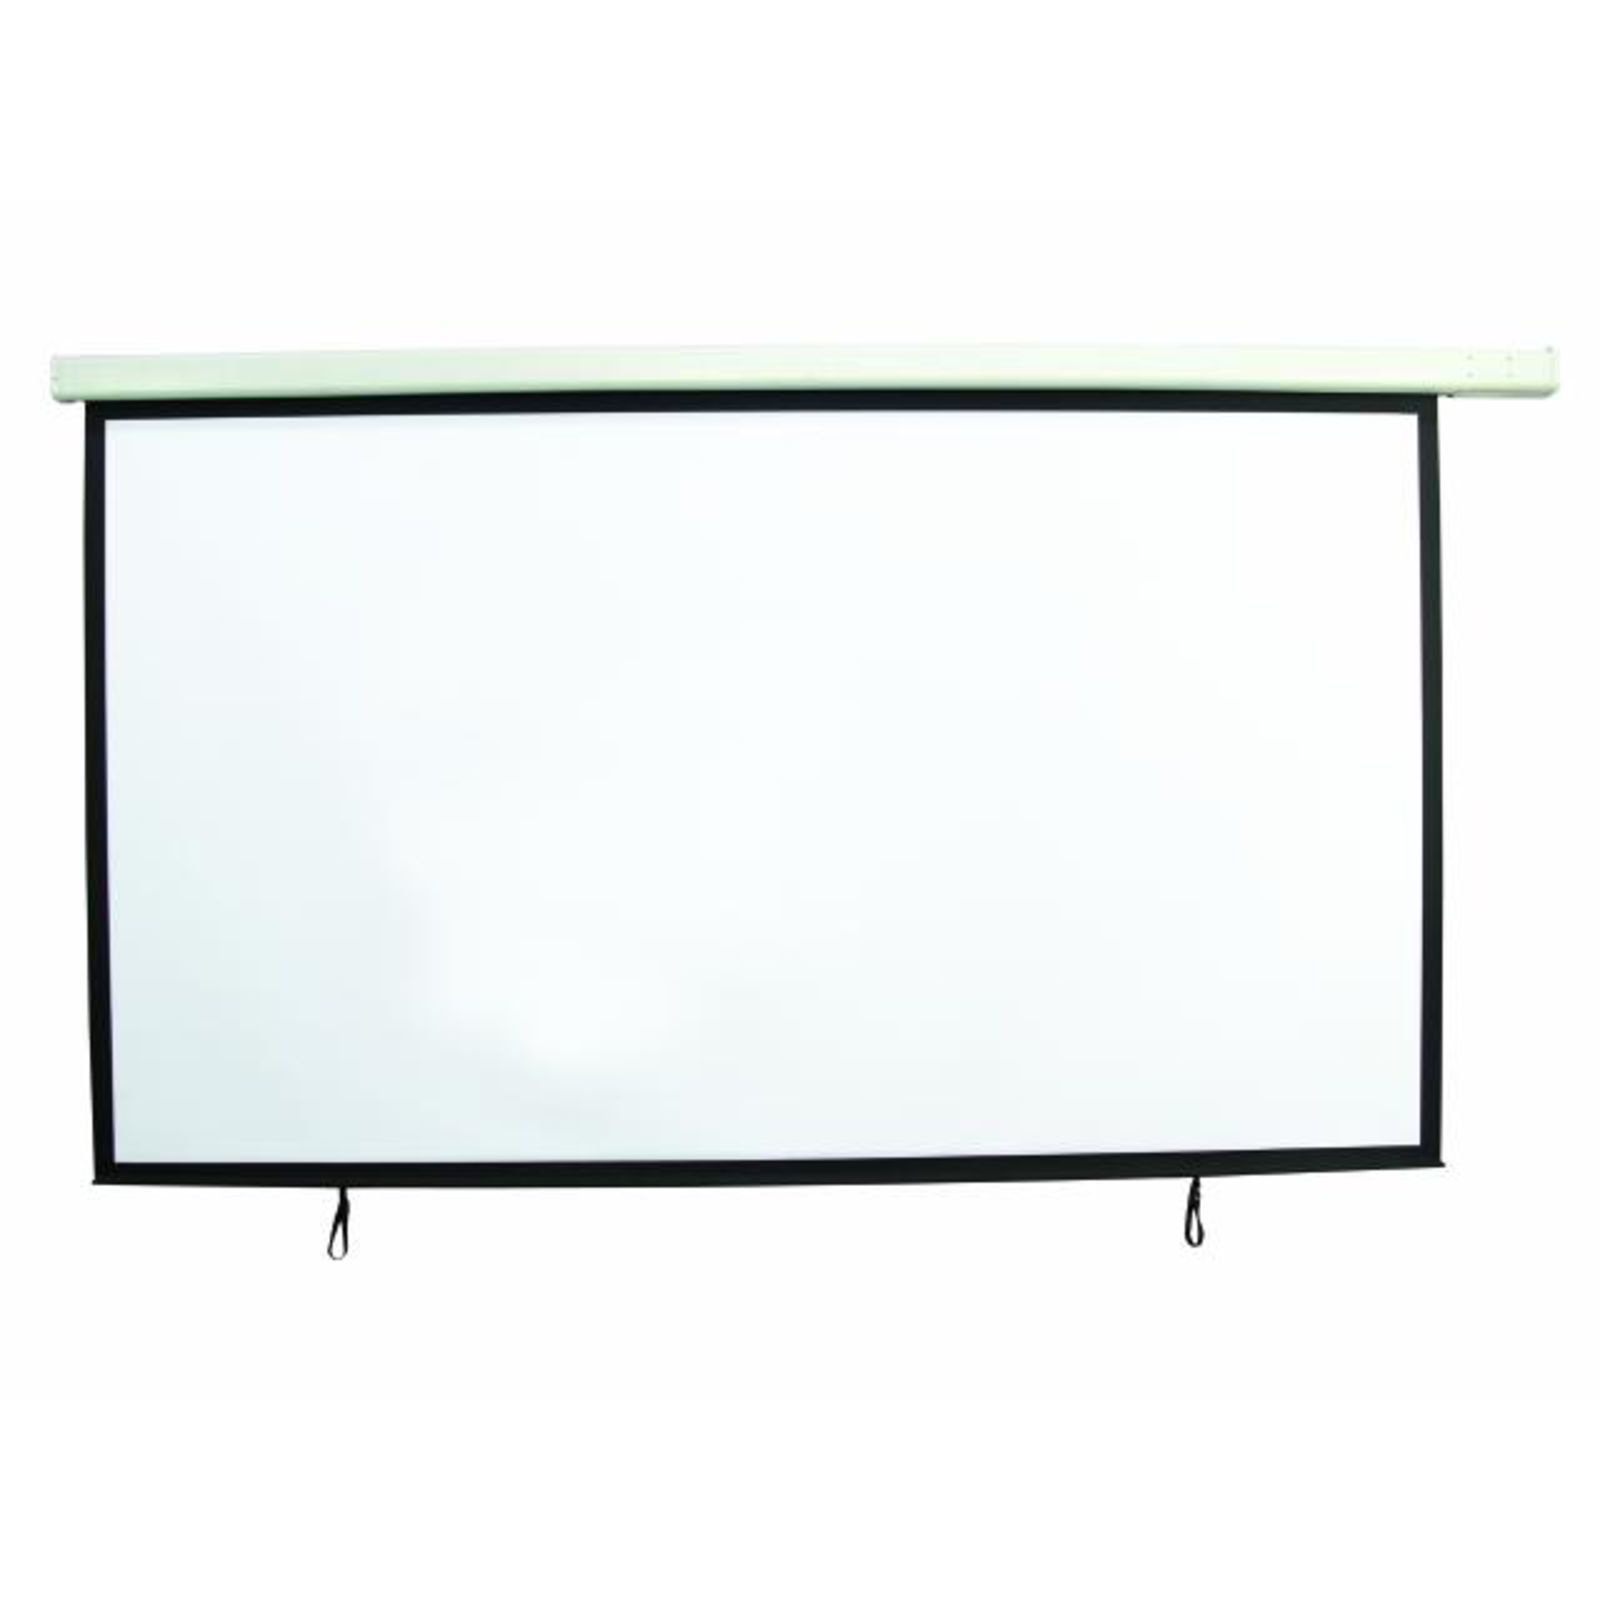 "Eurolite Motorized Screen IR 4:3 360x270cm 180"" Produktbillede"